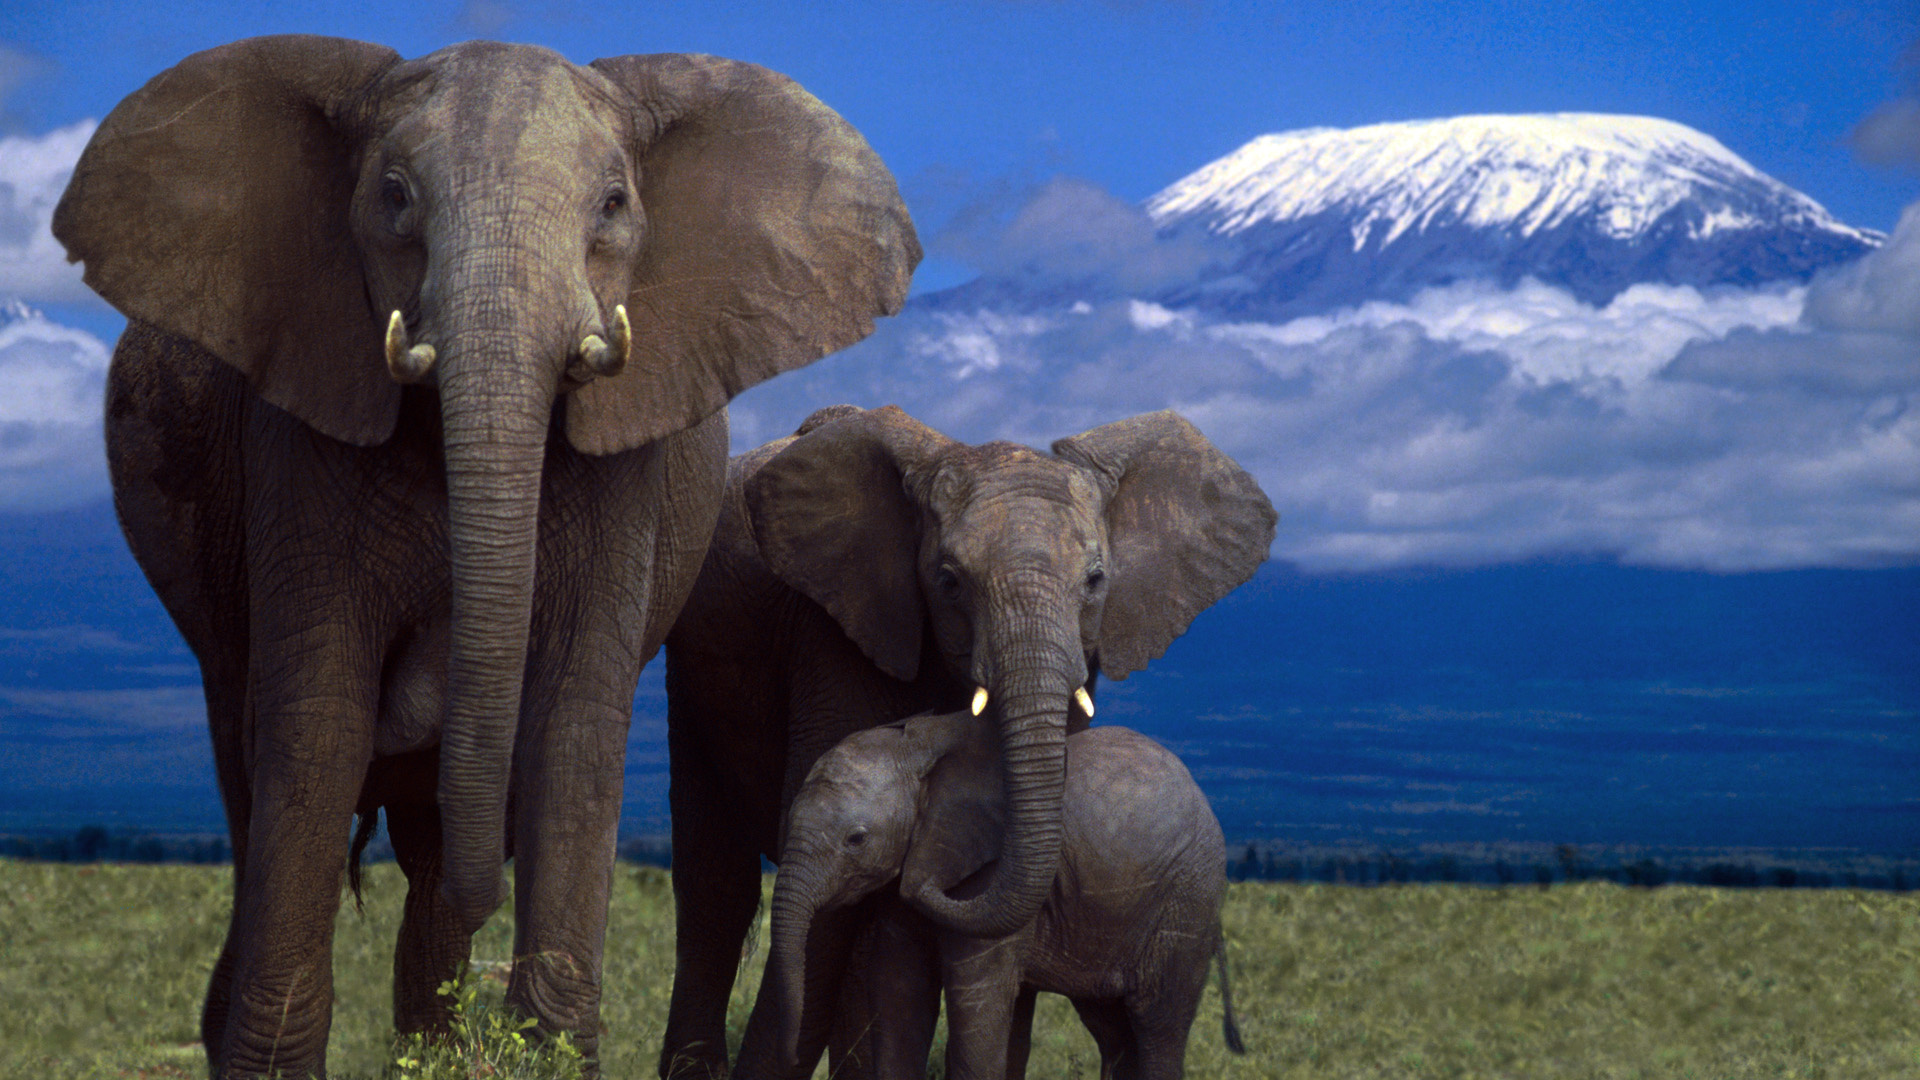 Wallpaper elephant, family, mountain, kilimanjaro, mount kilimanjaro ...